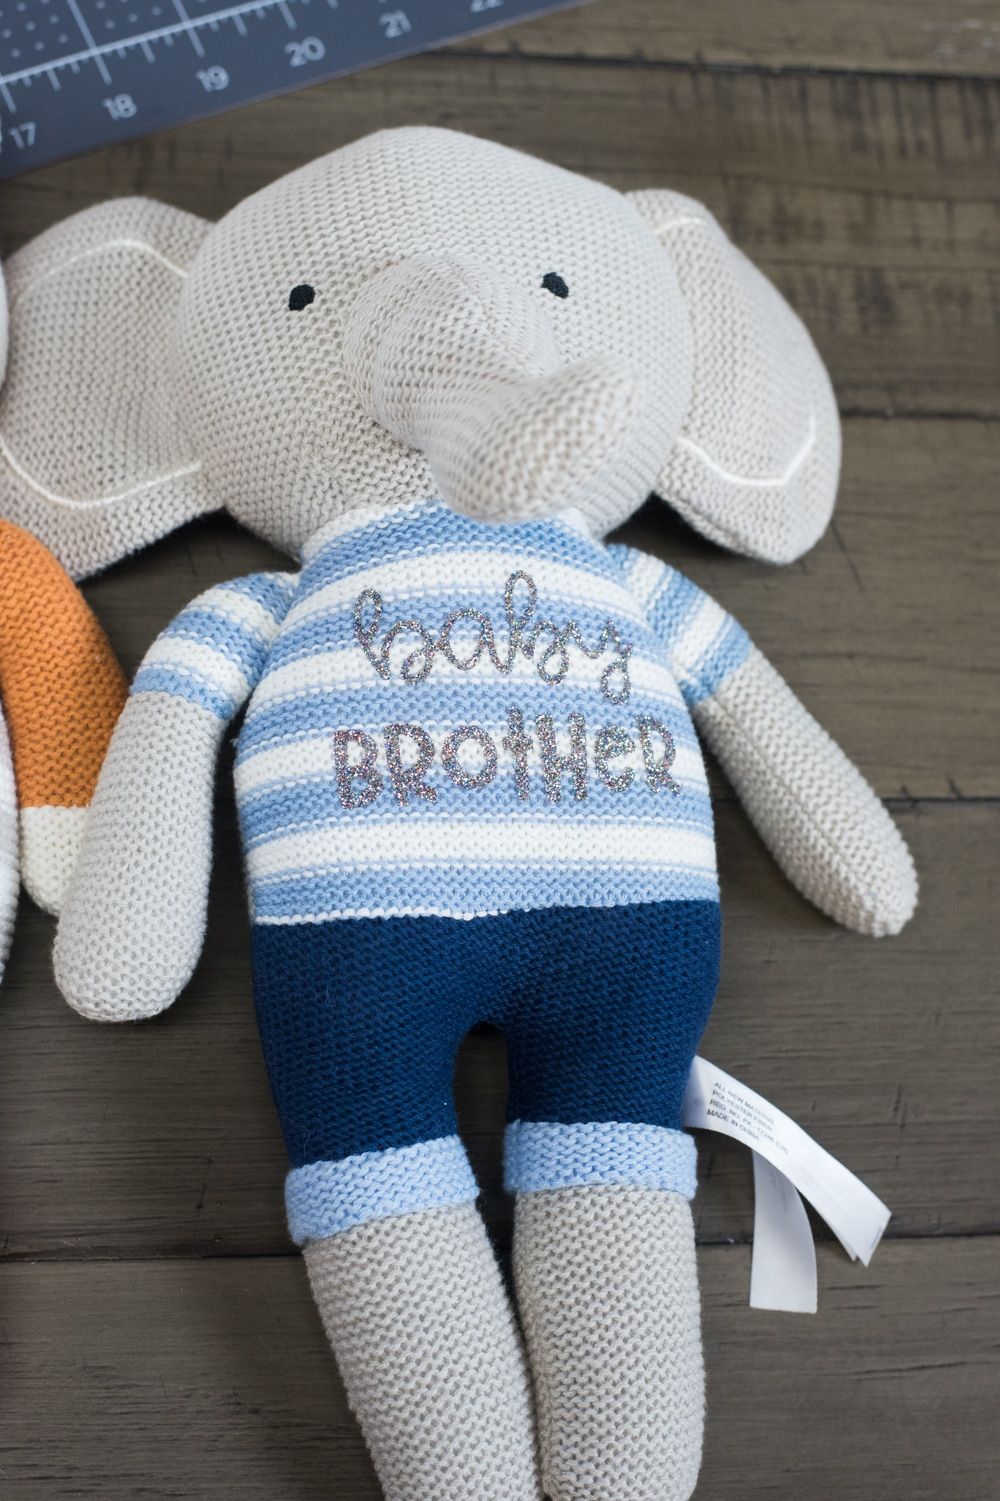 stuffed knit elephant with baby brother on the front in silver